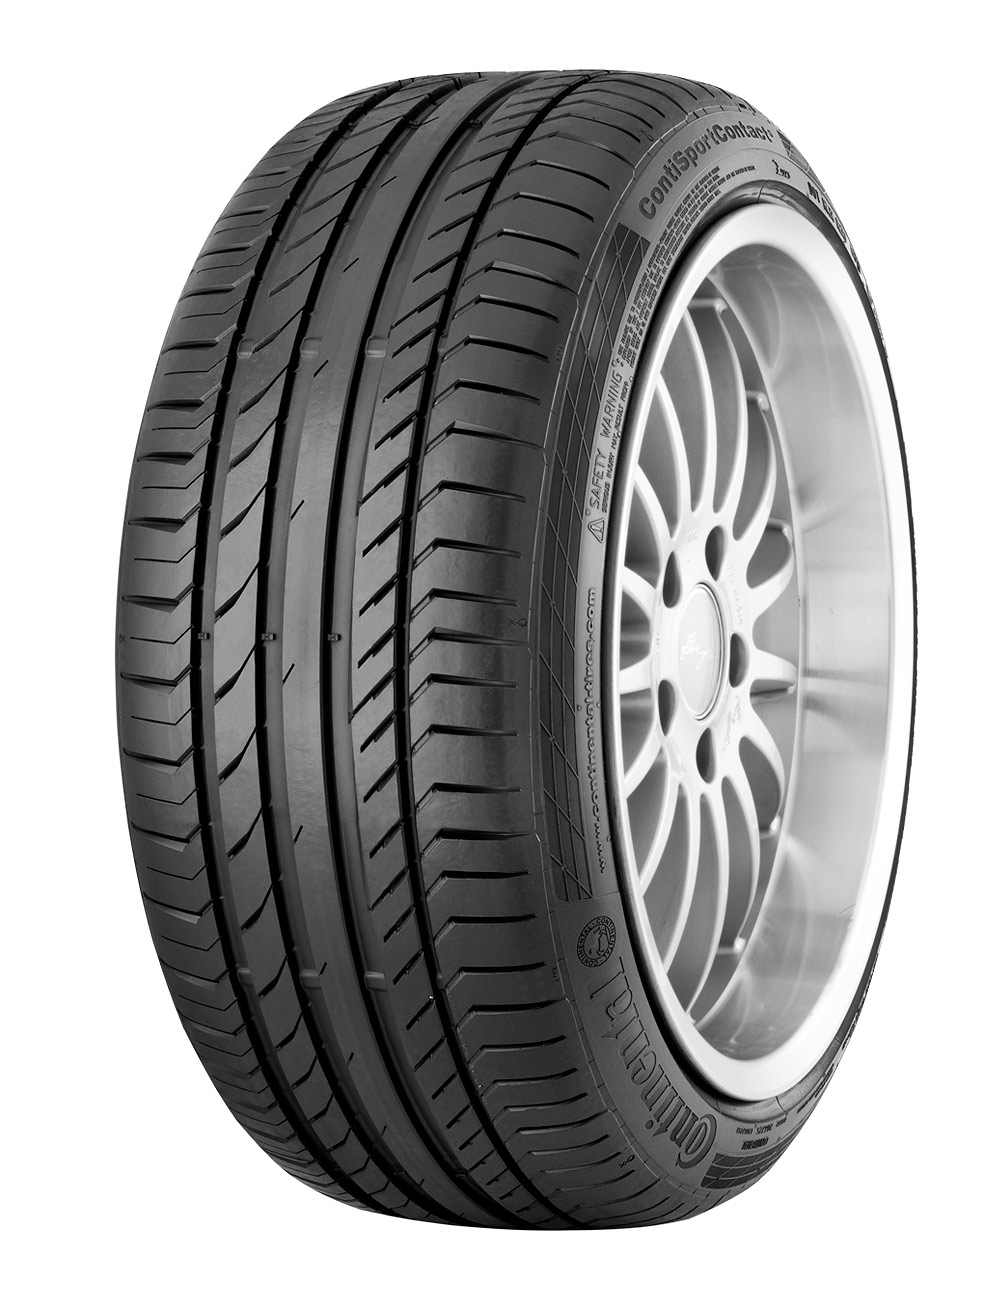 Gomme Autovettura Continental 225/40 R18 88Y SP.CONTACT 5 SSR Runflat Estivo